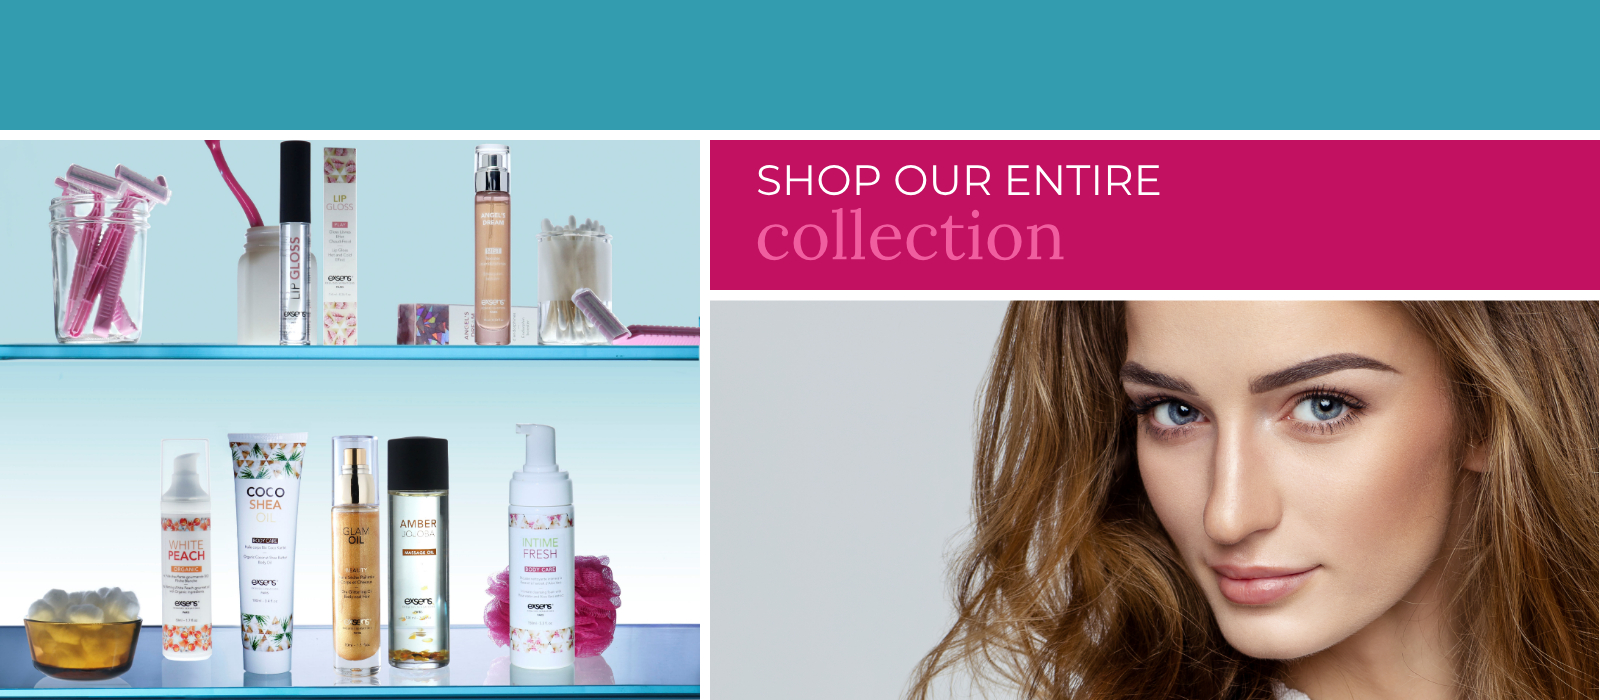 Shop EXSENS Vegan Paraben Free Body Care and Sexual Wellness Products